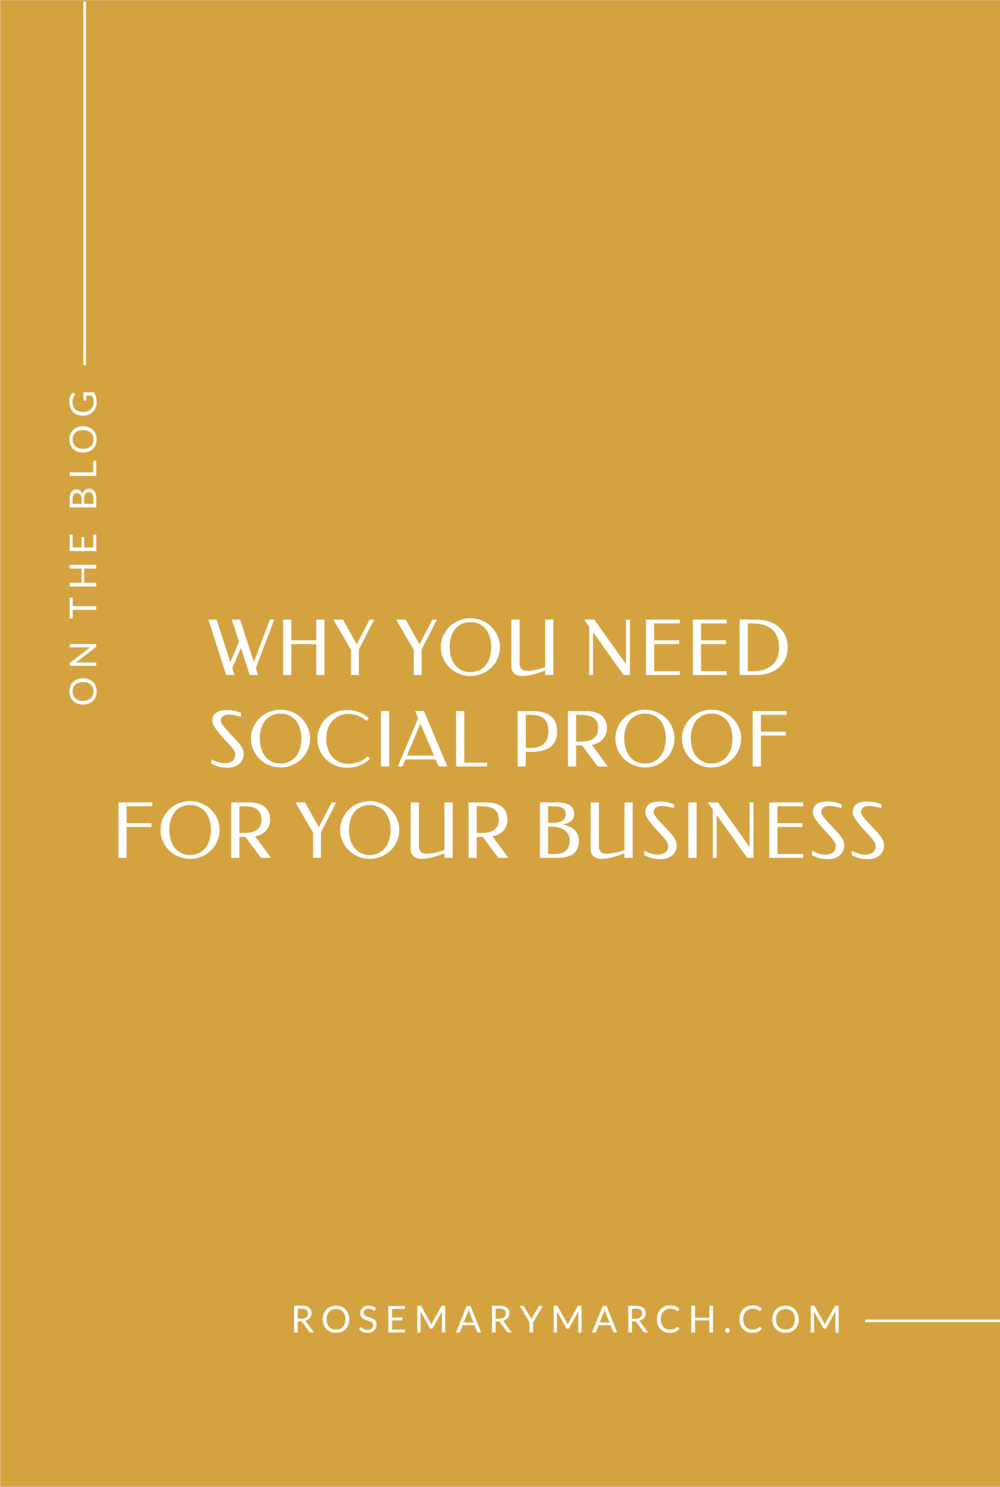 Why You Need Social Proof For Your Business - Rosemary March Creative Studio